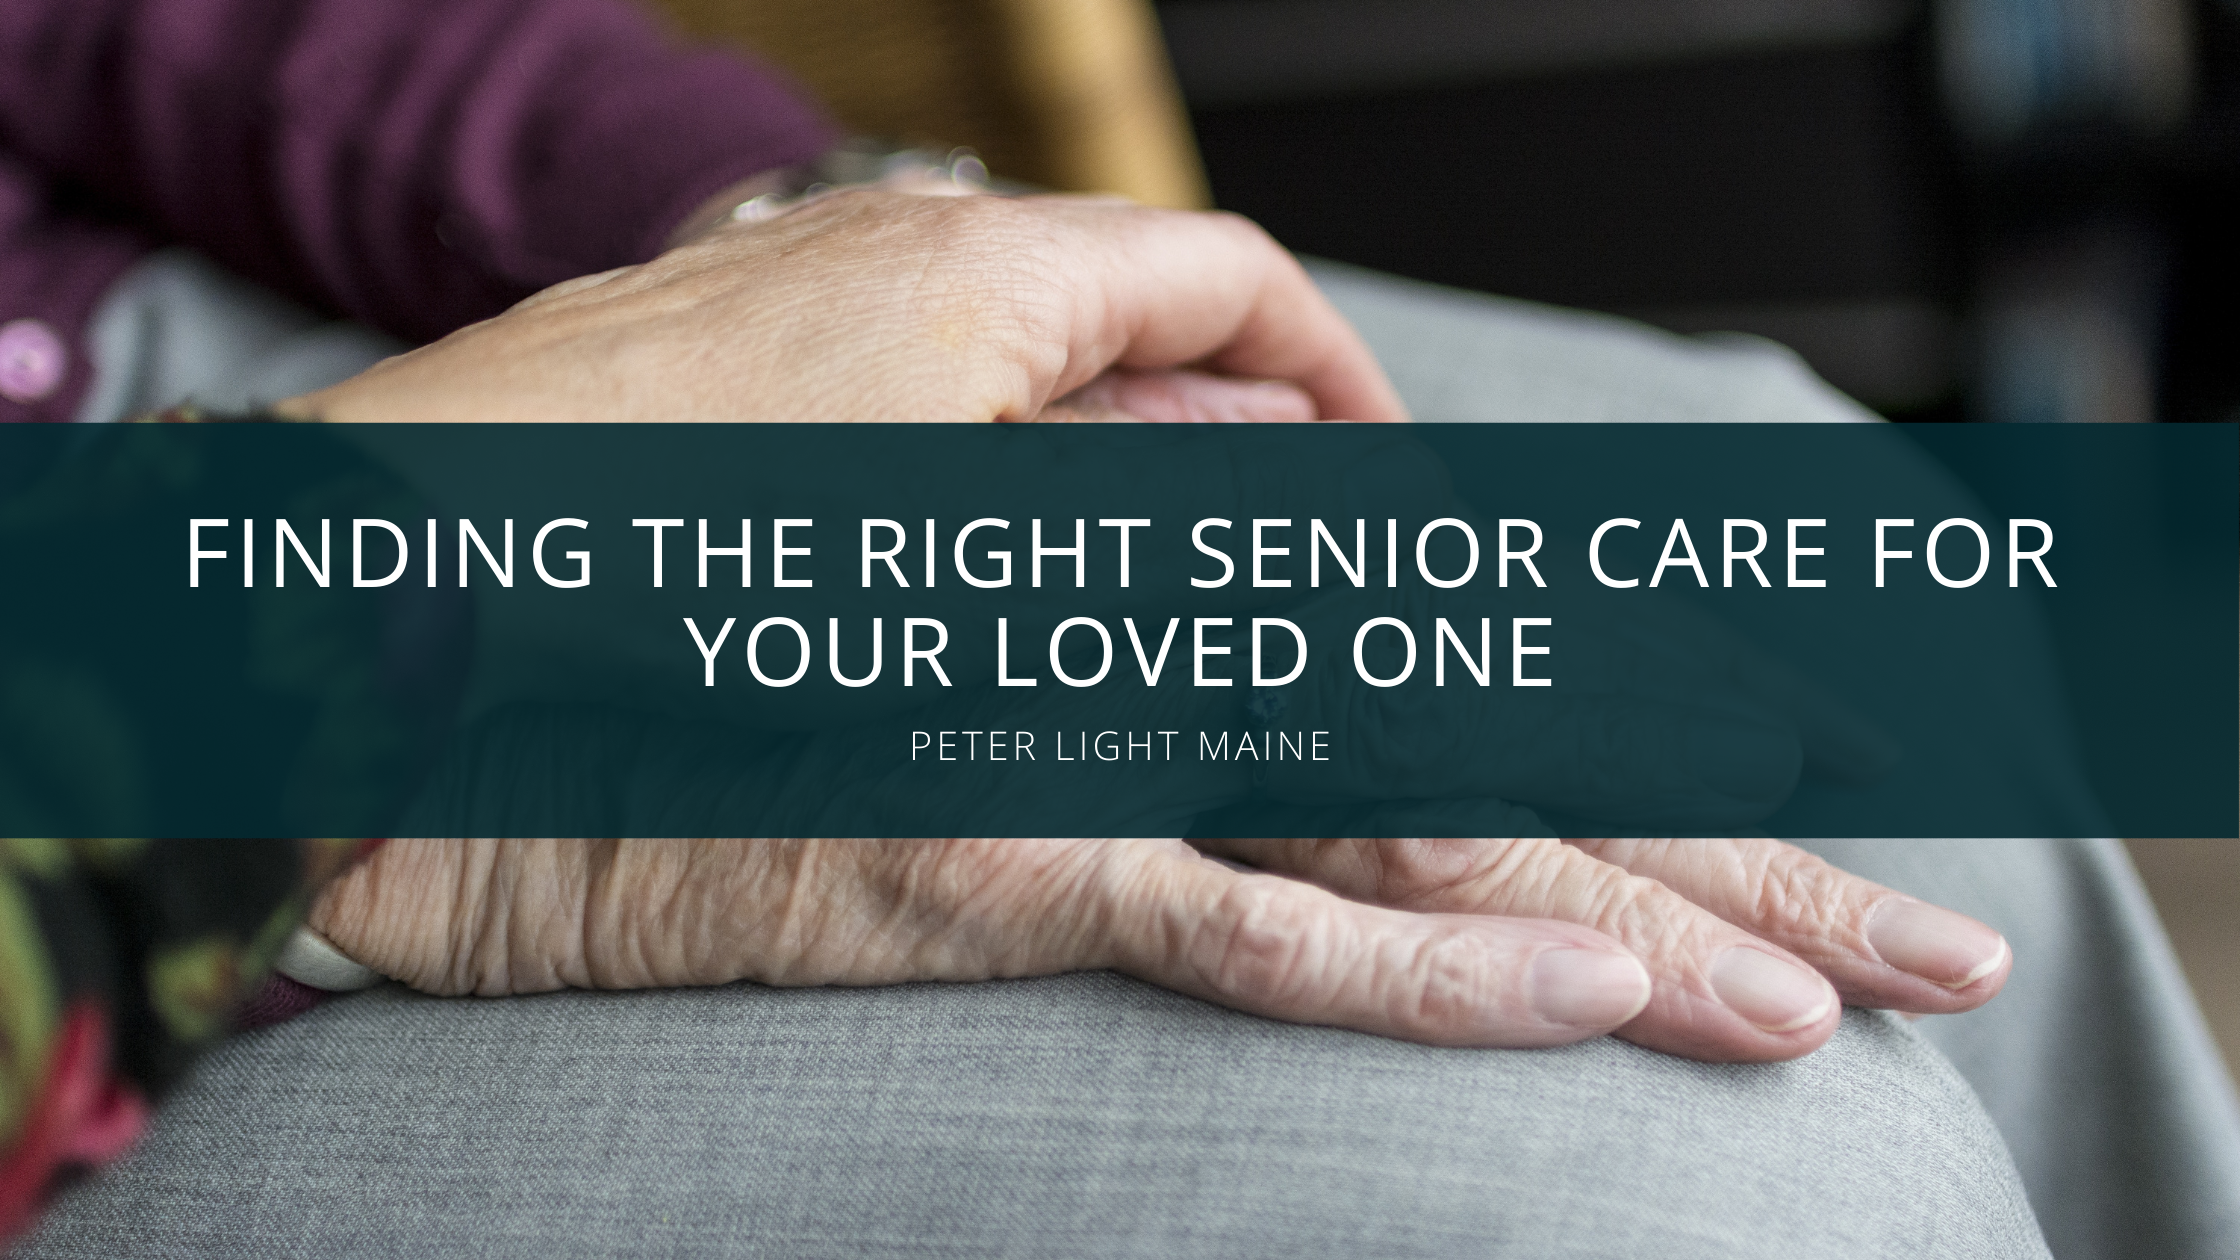 Peter Light Maine: Finding the Right Senior Care for Your Loved One